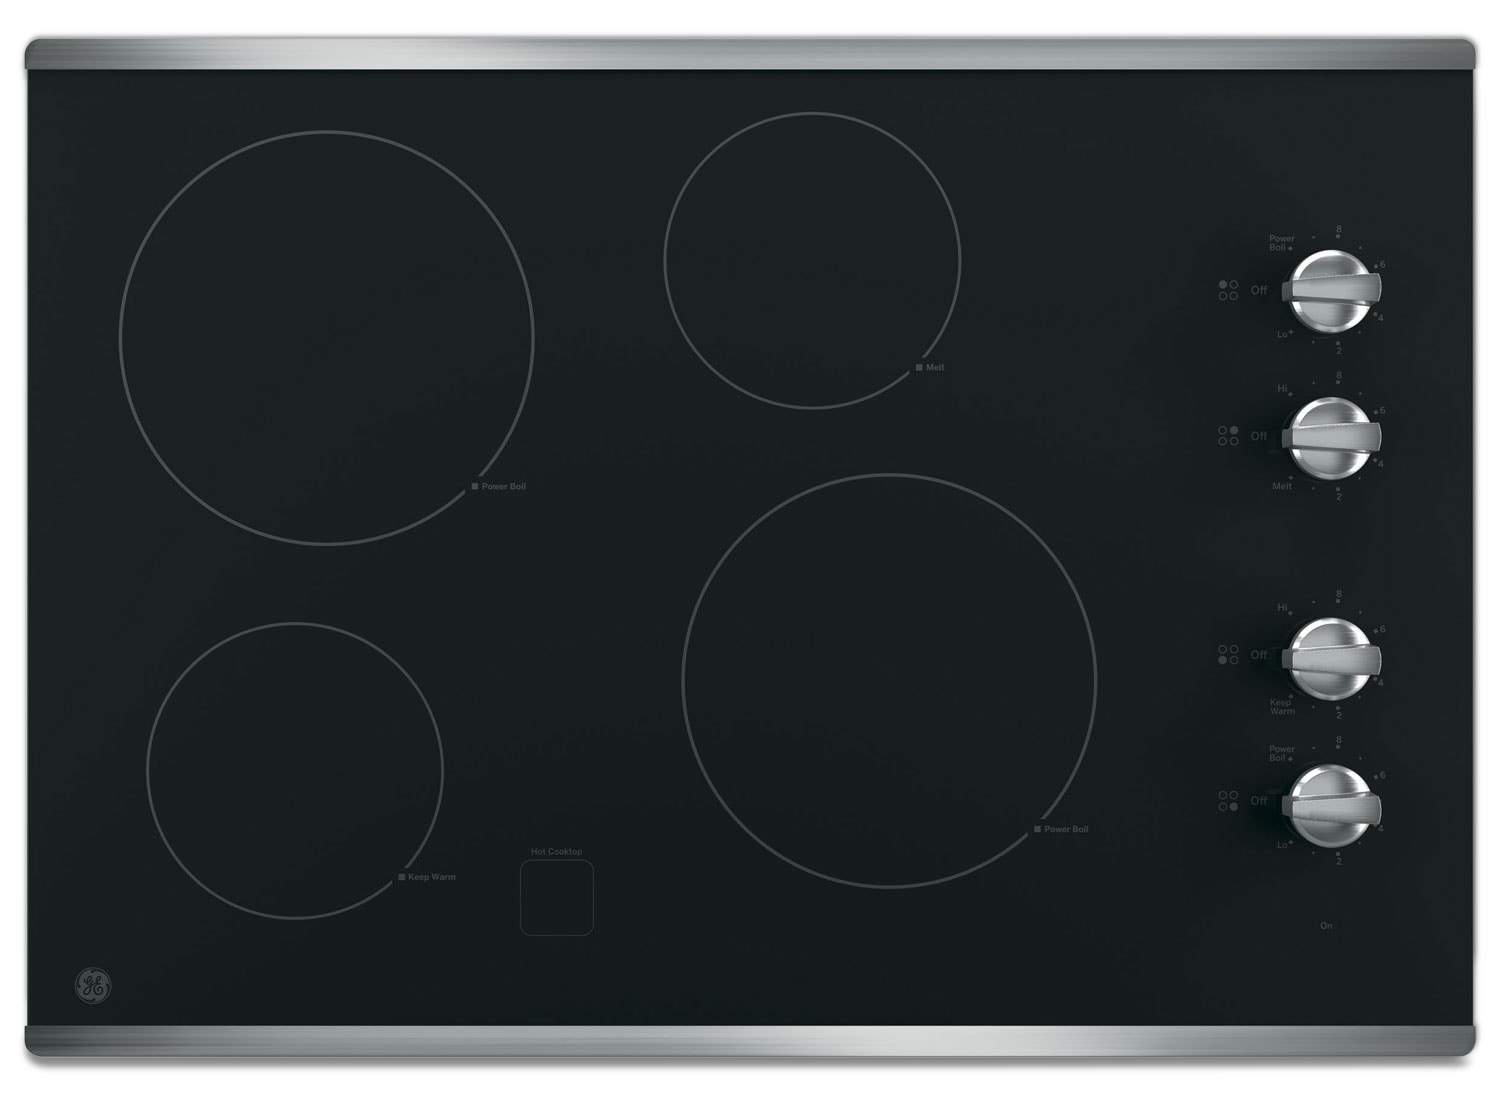 "GE 30"" Electric Cooktop with Built-In Knob-Control - Stainless Steel"